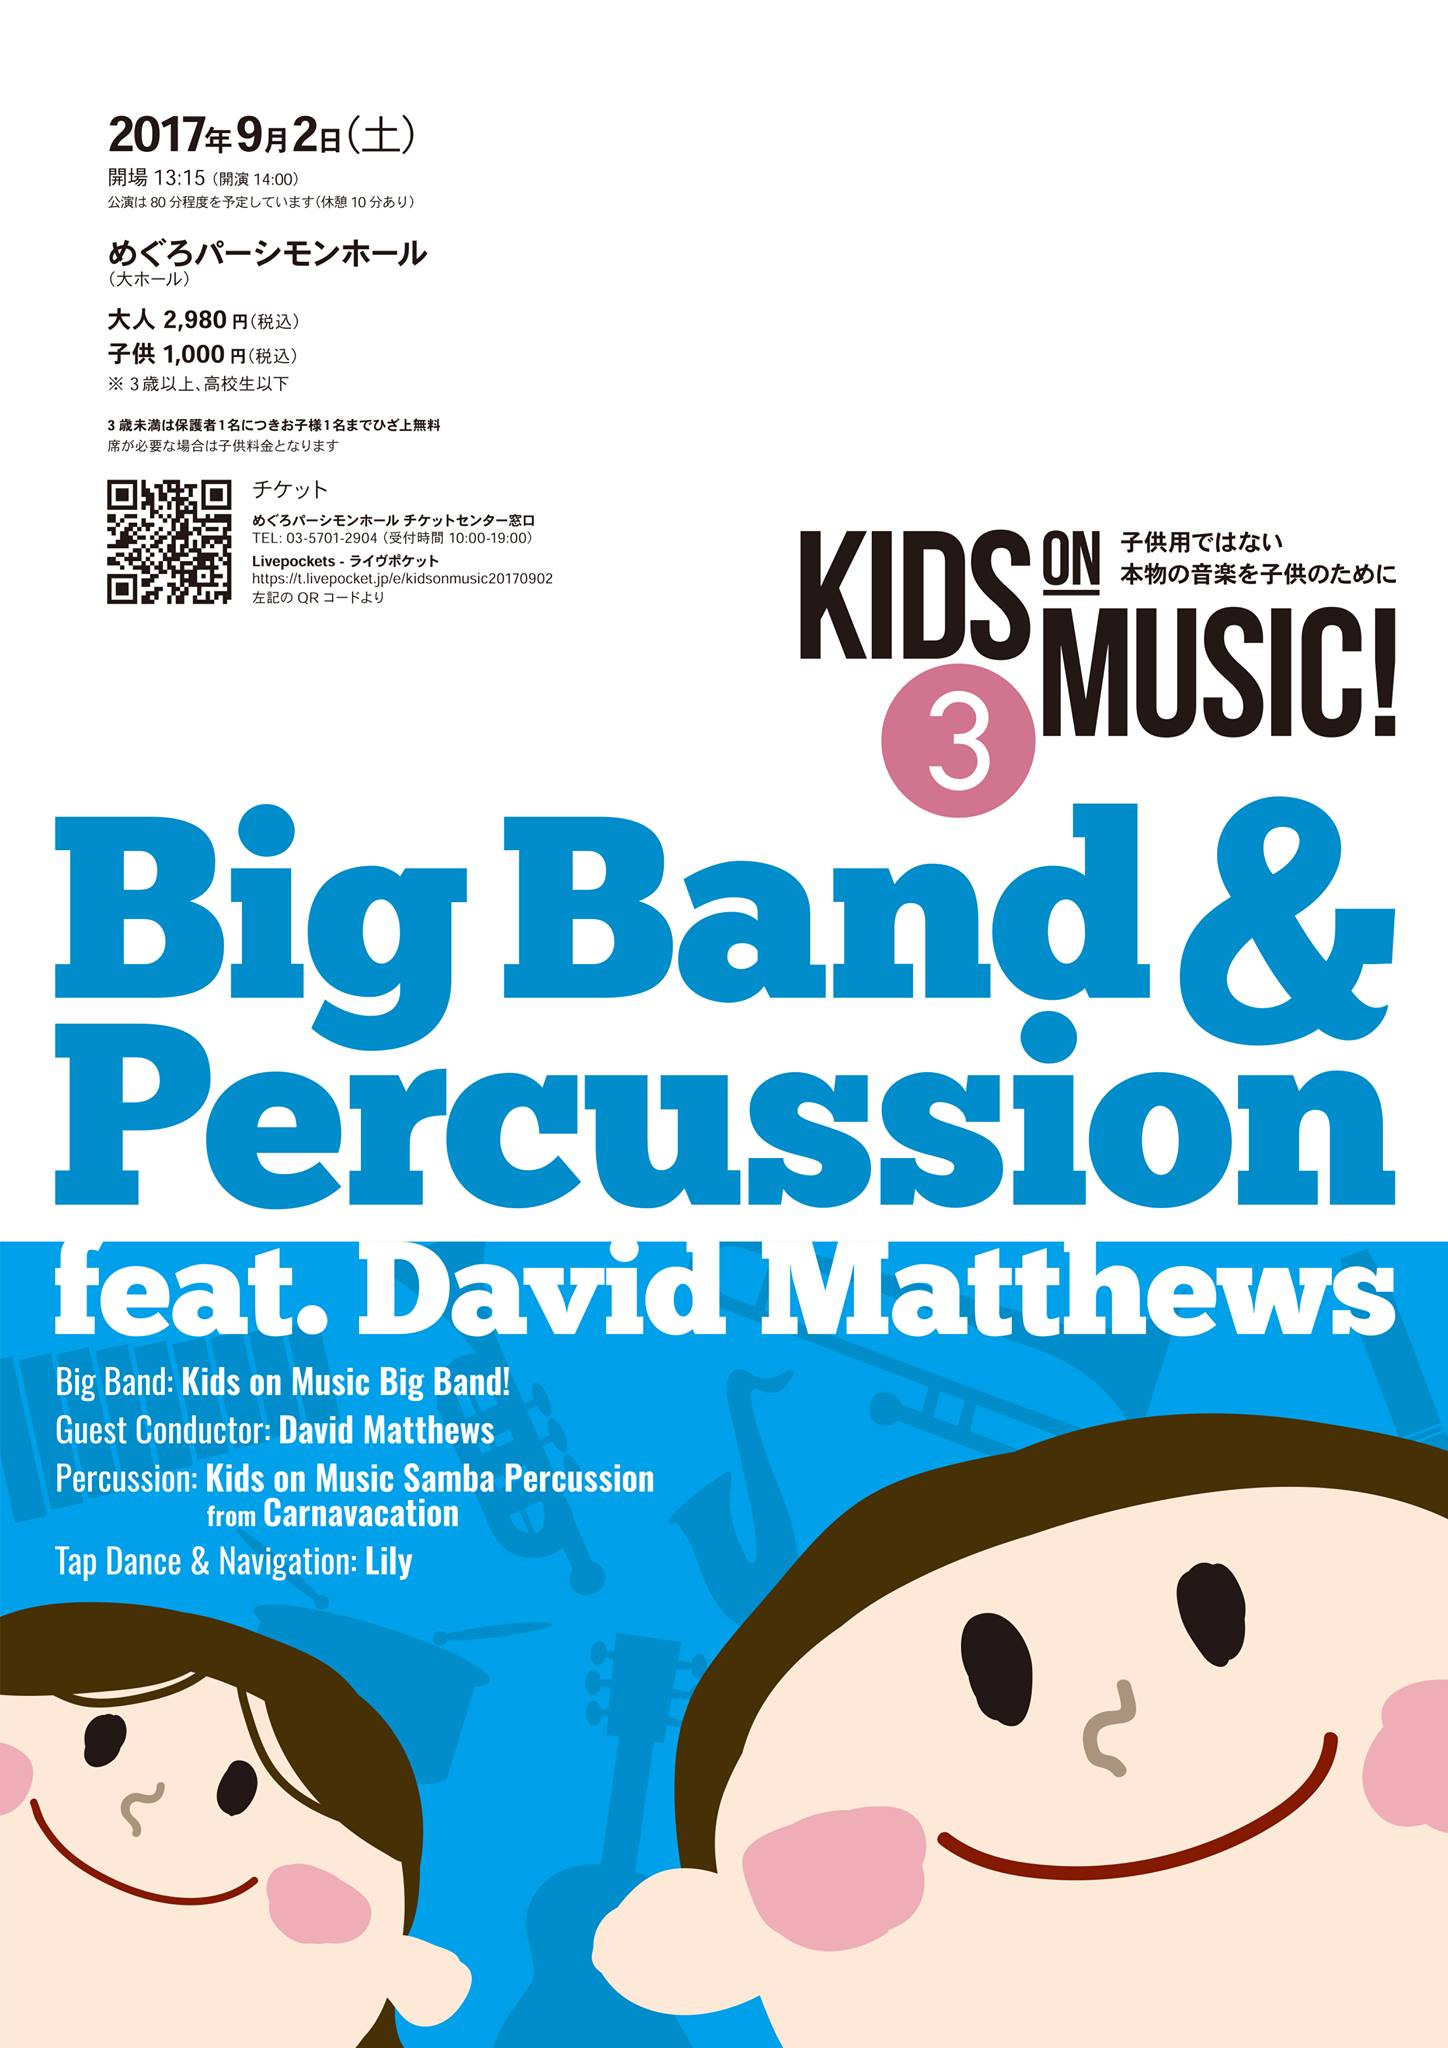 KIDS ON MUSIC!  -Big Band & Percussion- feat.  David Matthews